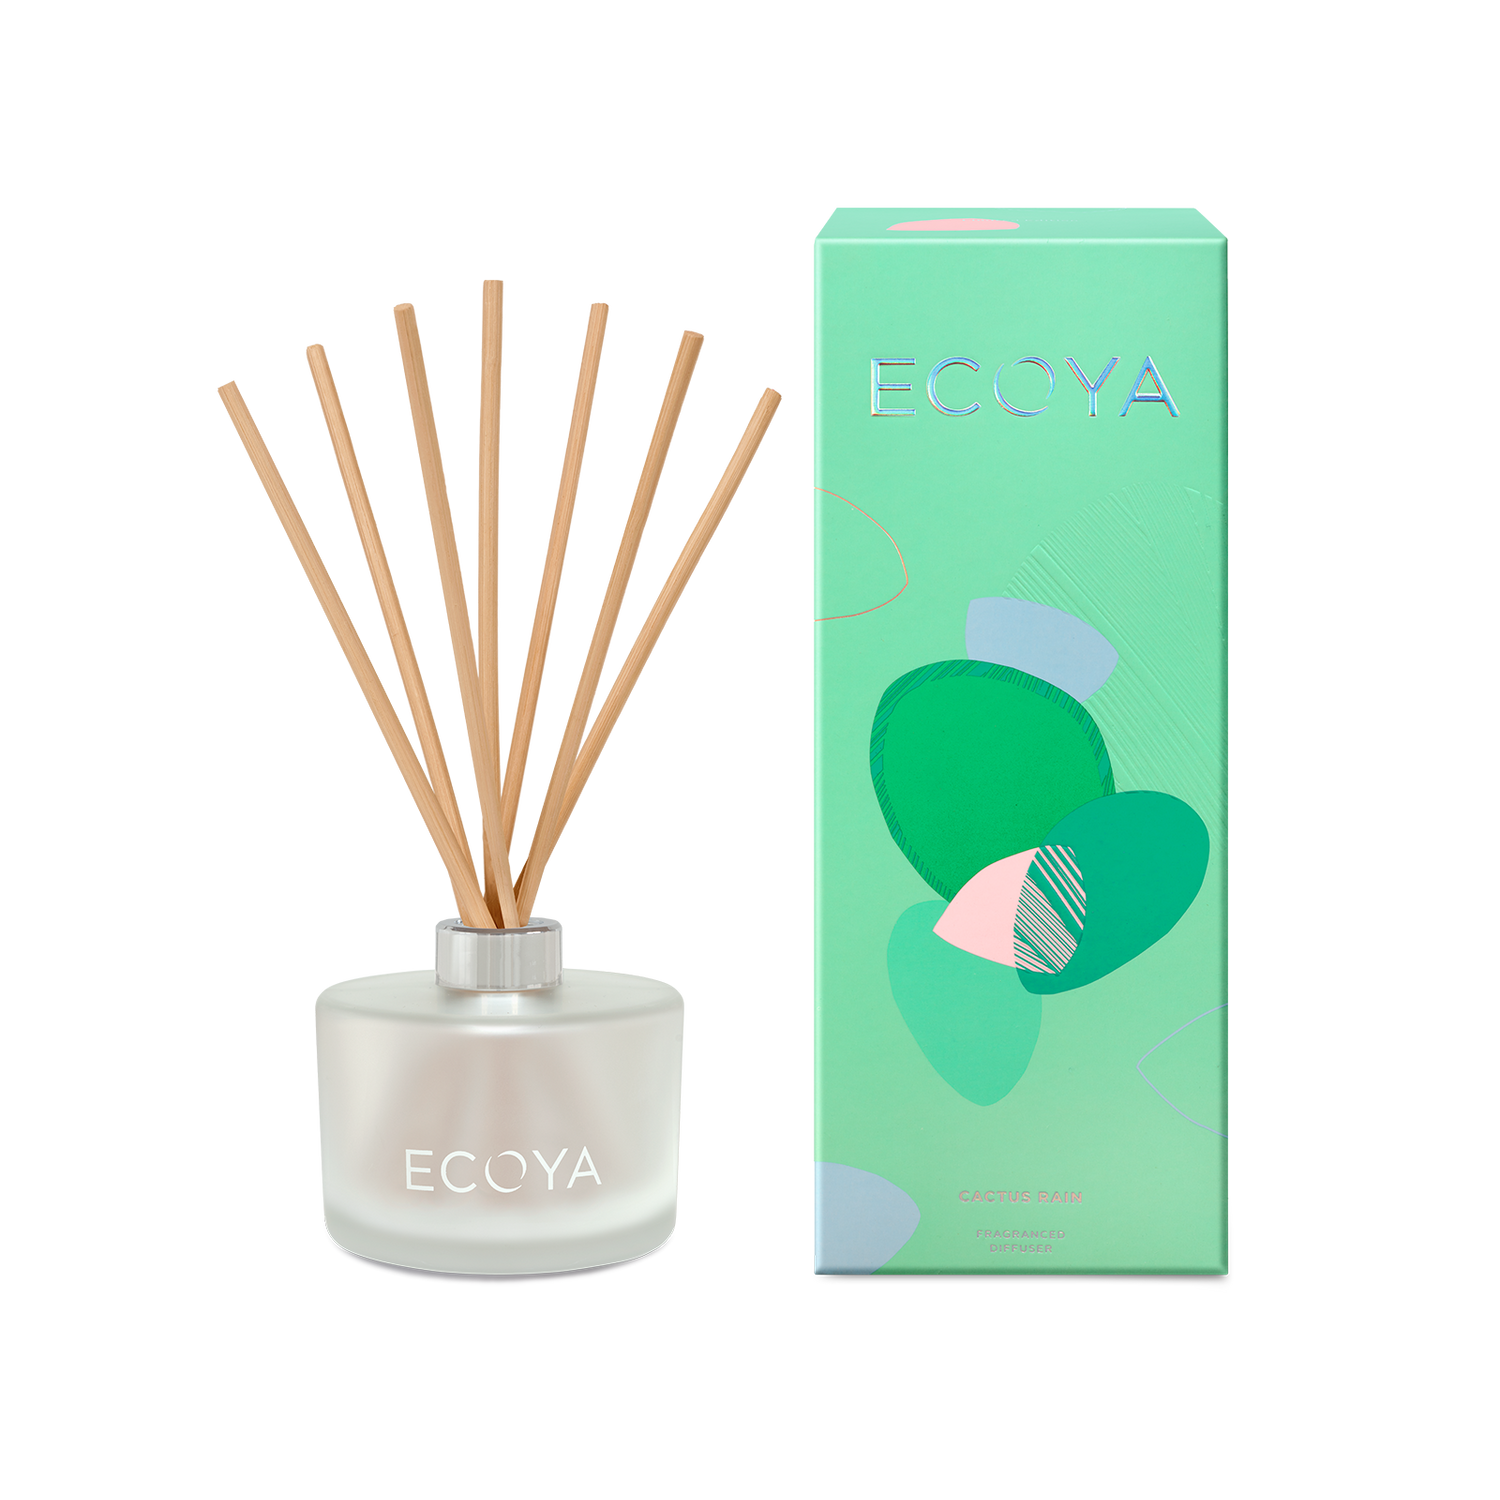 ECOYA fragranced diffuser